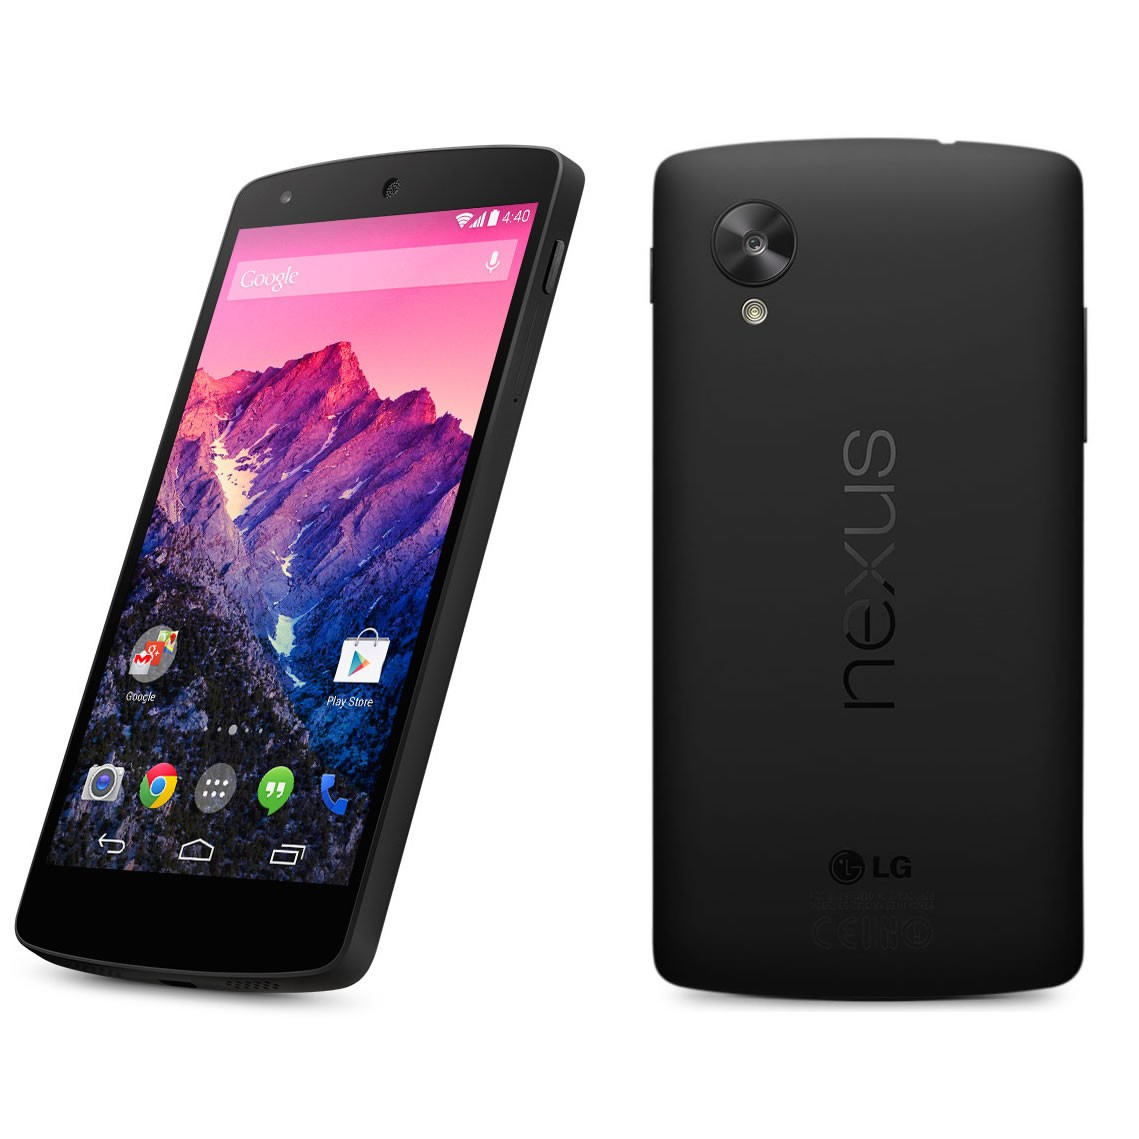 LG Google Nexus 5 (16GB) - Intouch Wireless